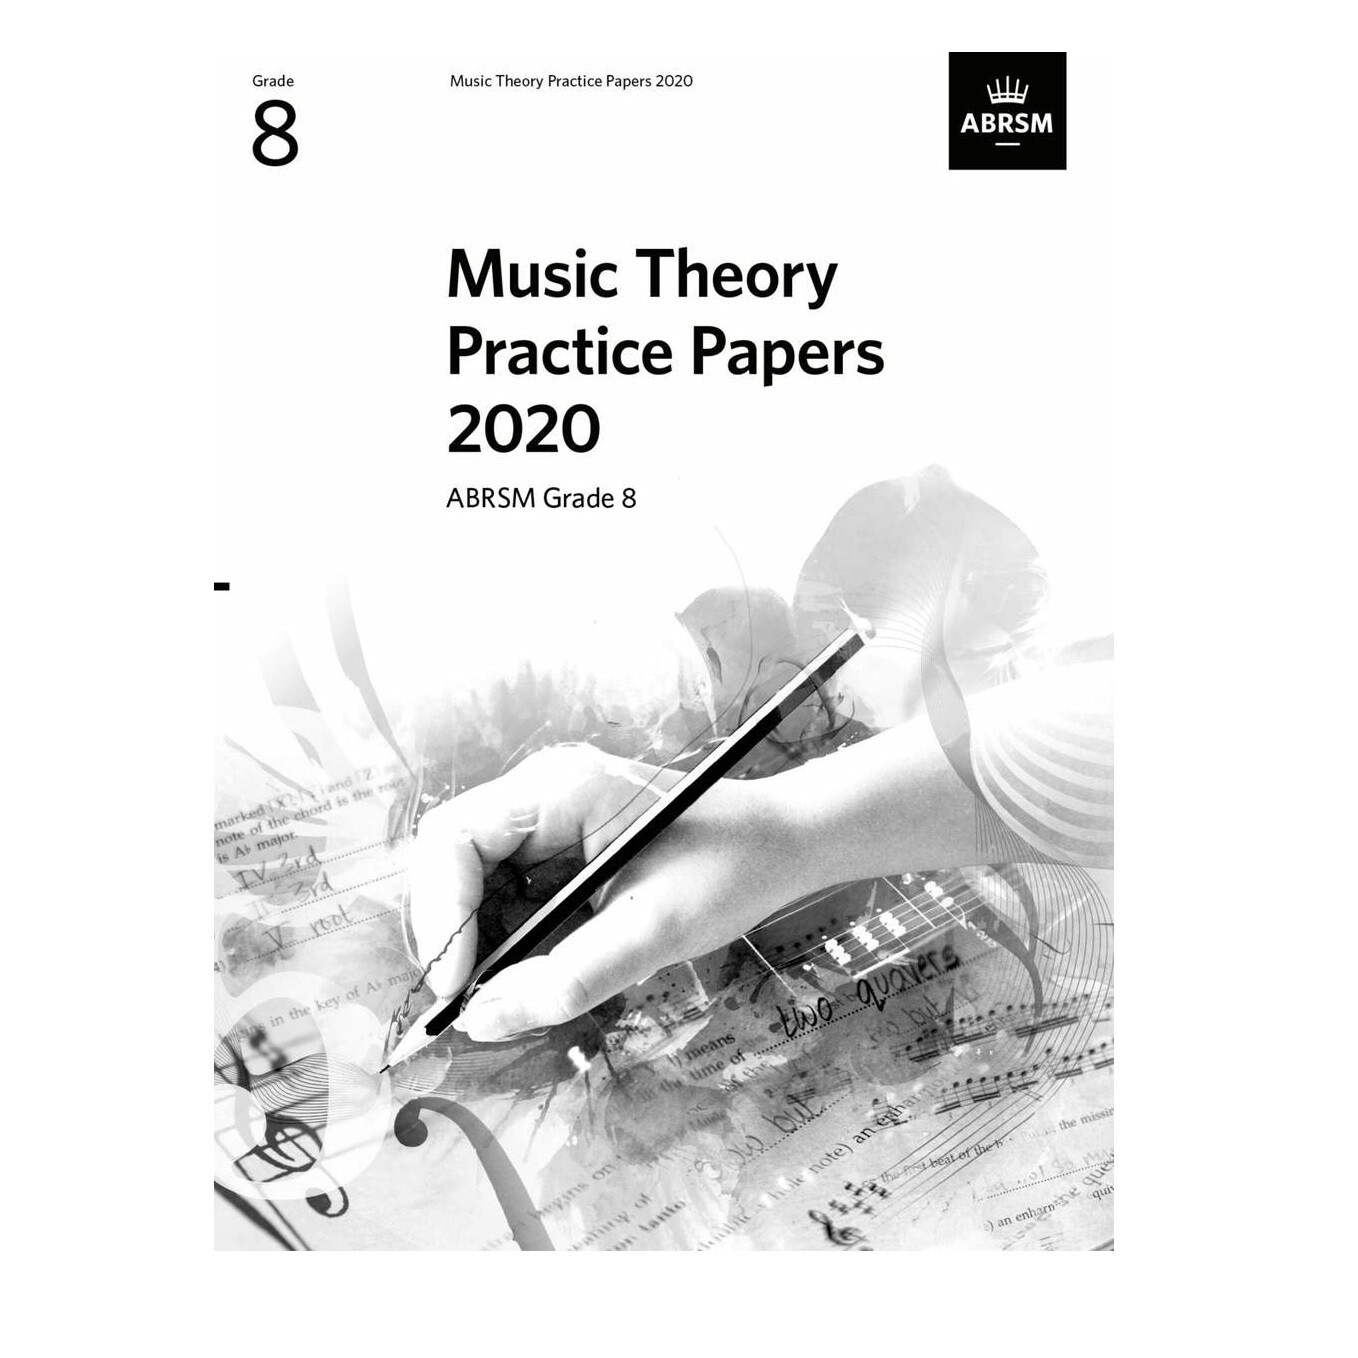 ABRSM Music Theory Practice Papers (new 2020 format) - Grade 8